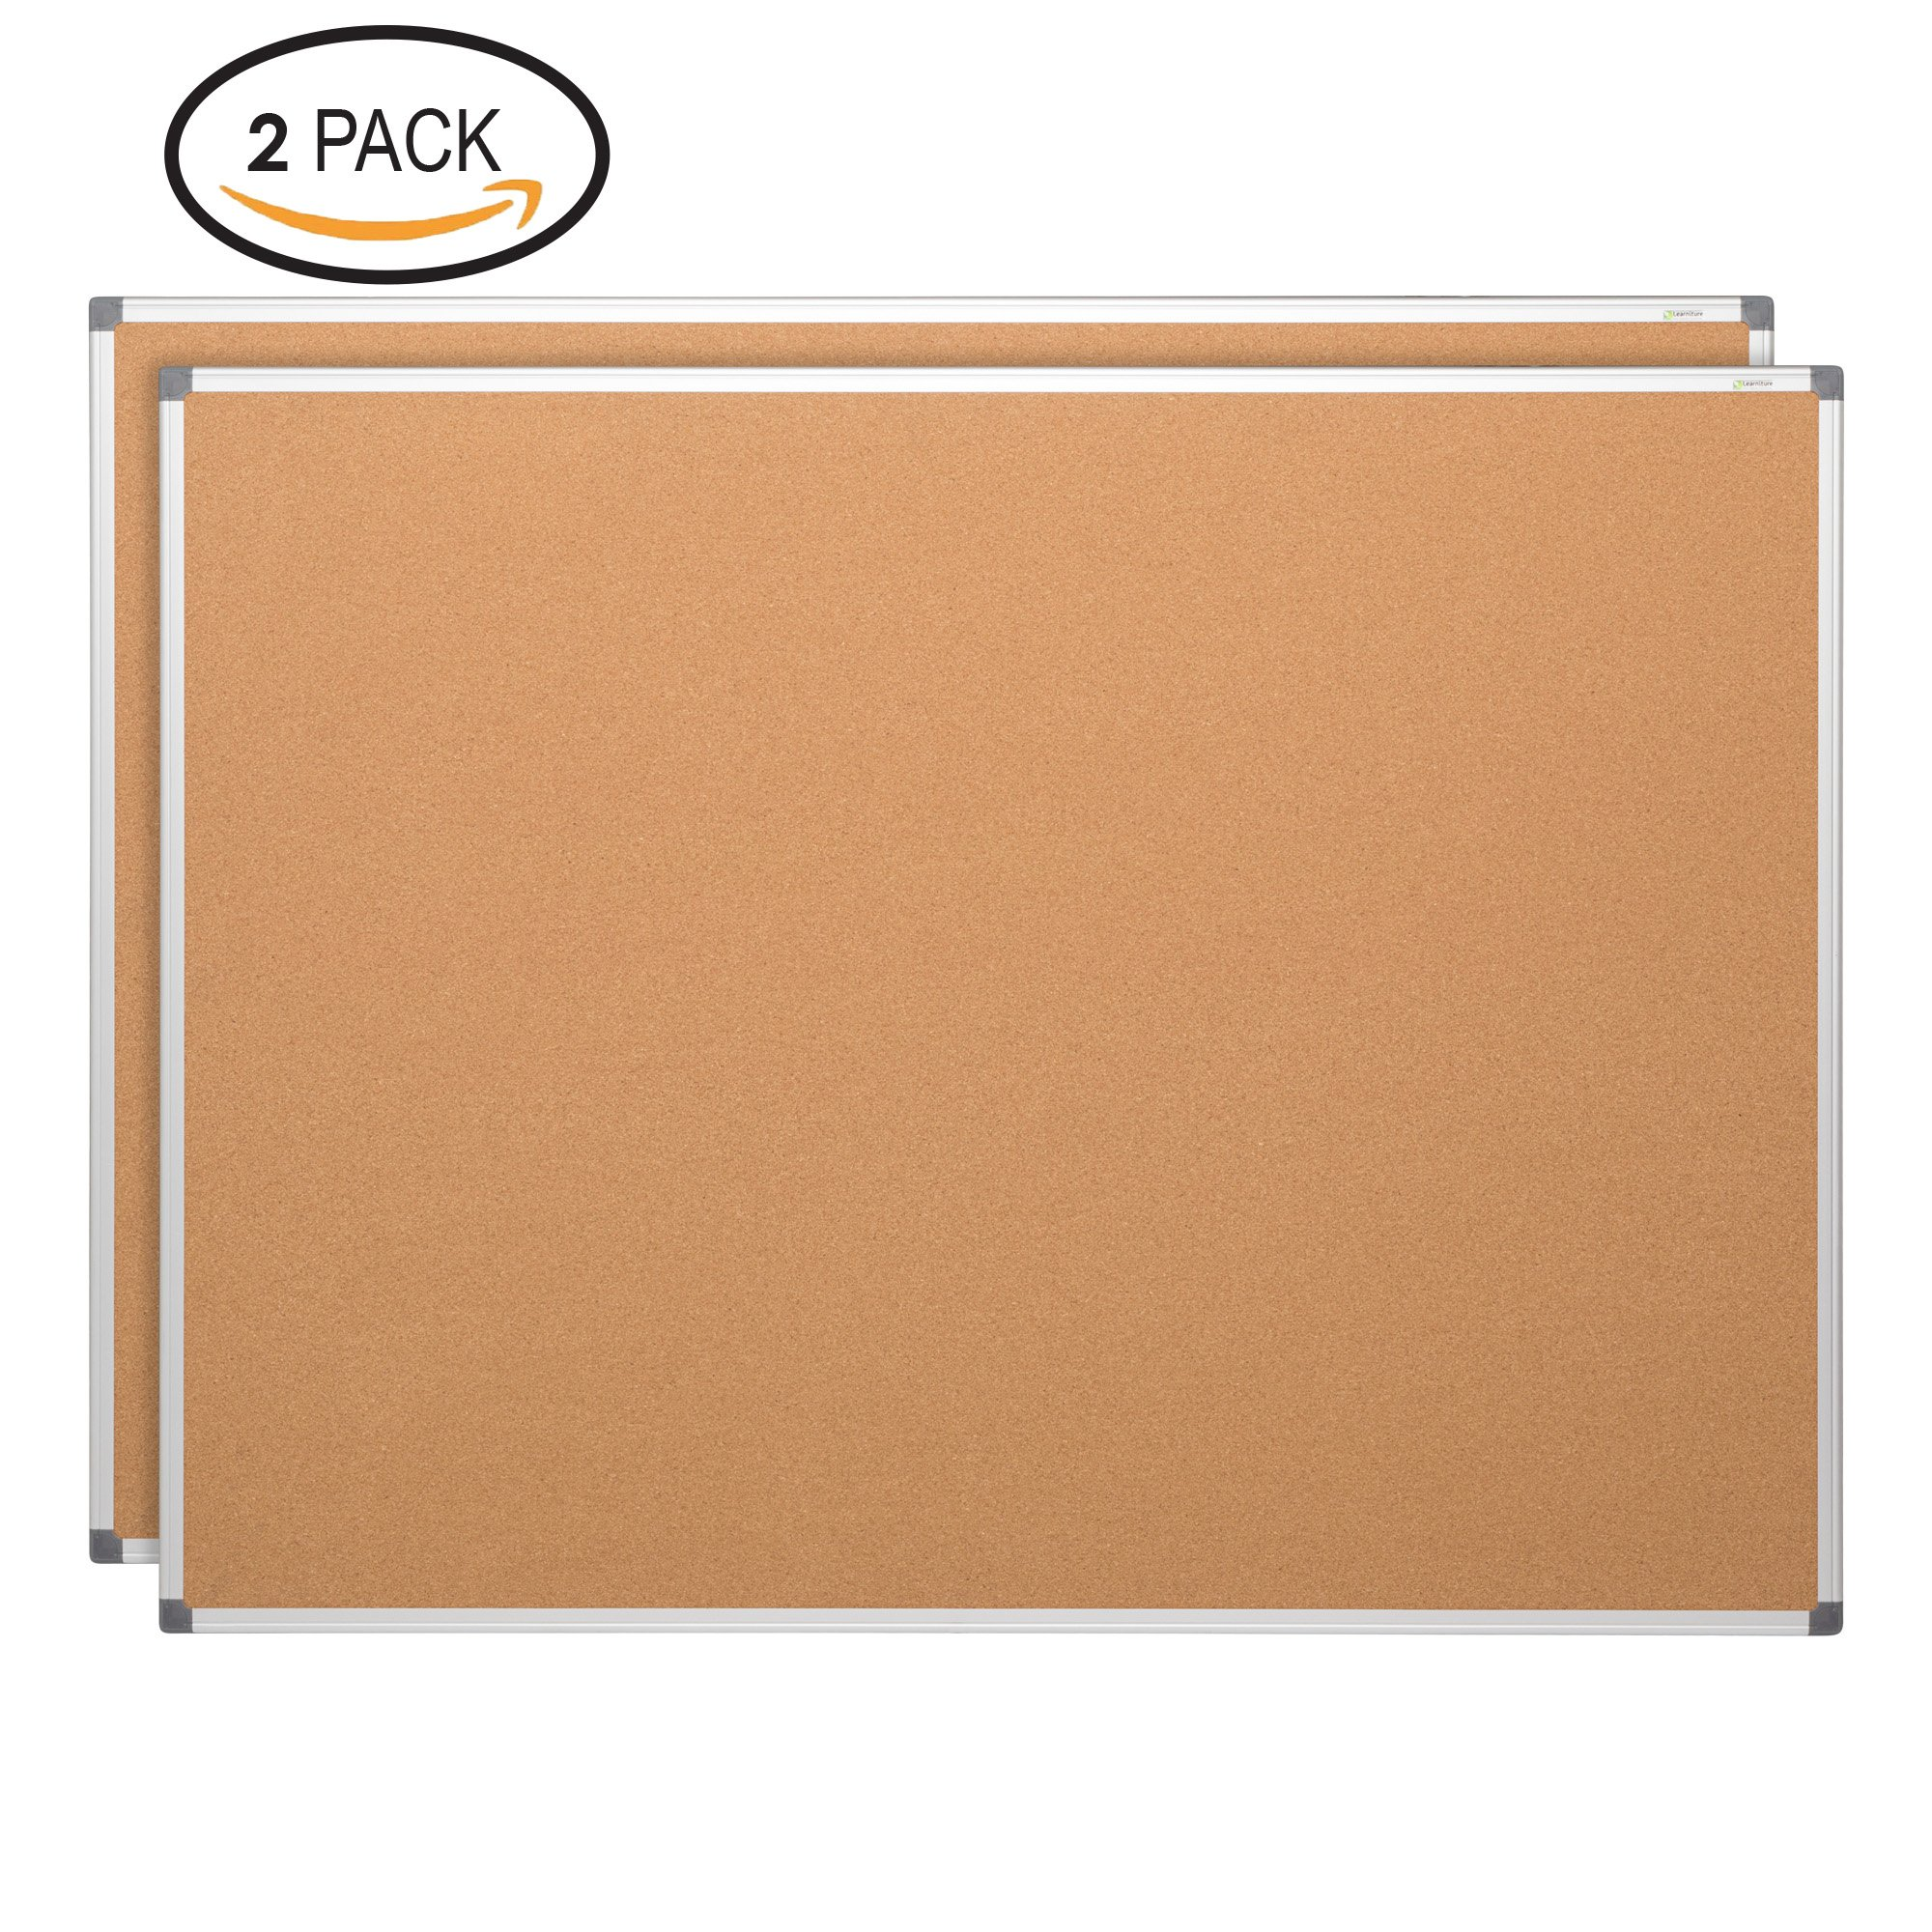 Learniture LNT-127-24362-SO Natural Cork Board w/Aluminum Frame, Brown (Pack of 2)